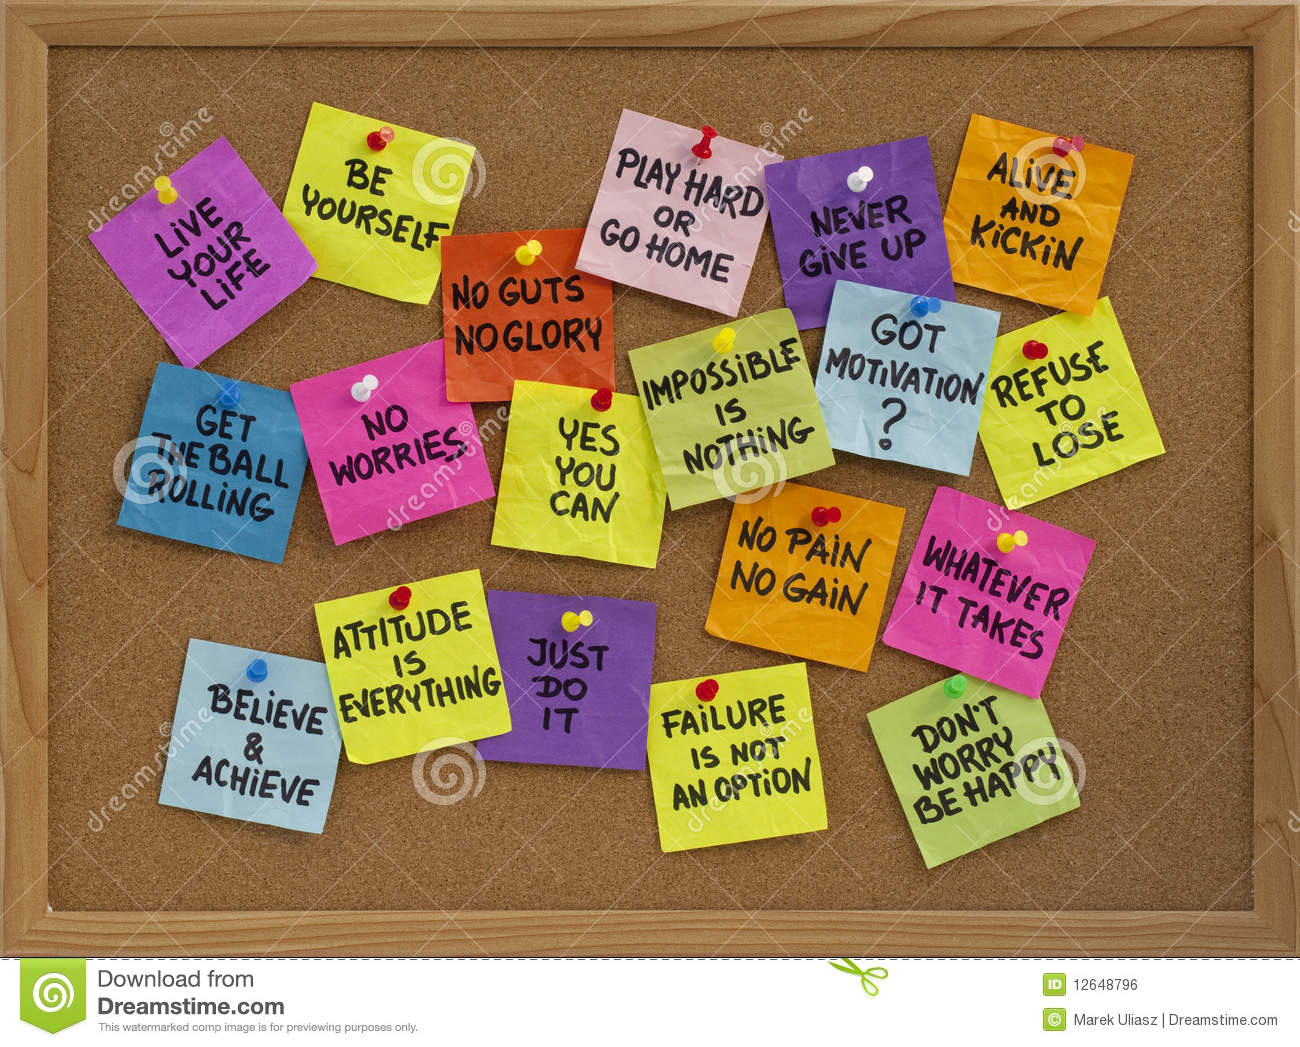 Royalty Free Stock Image Motivational Reminders Bulletin Board Image12648796 on Leader In Me Bulletin Board